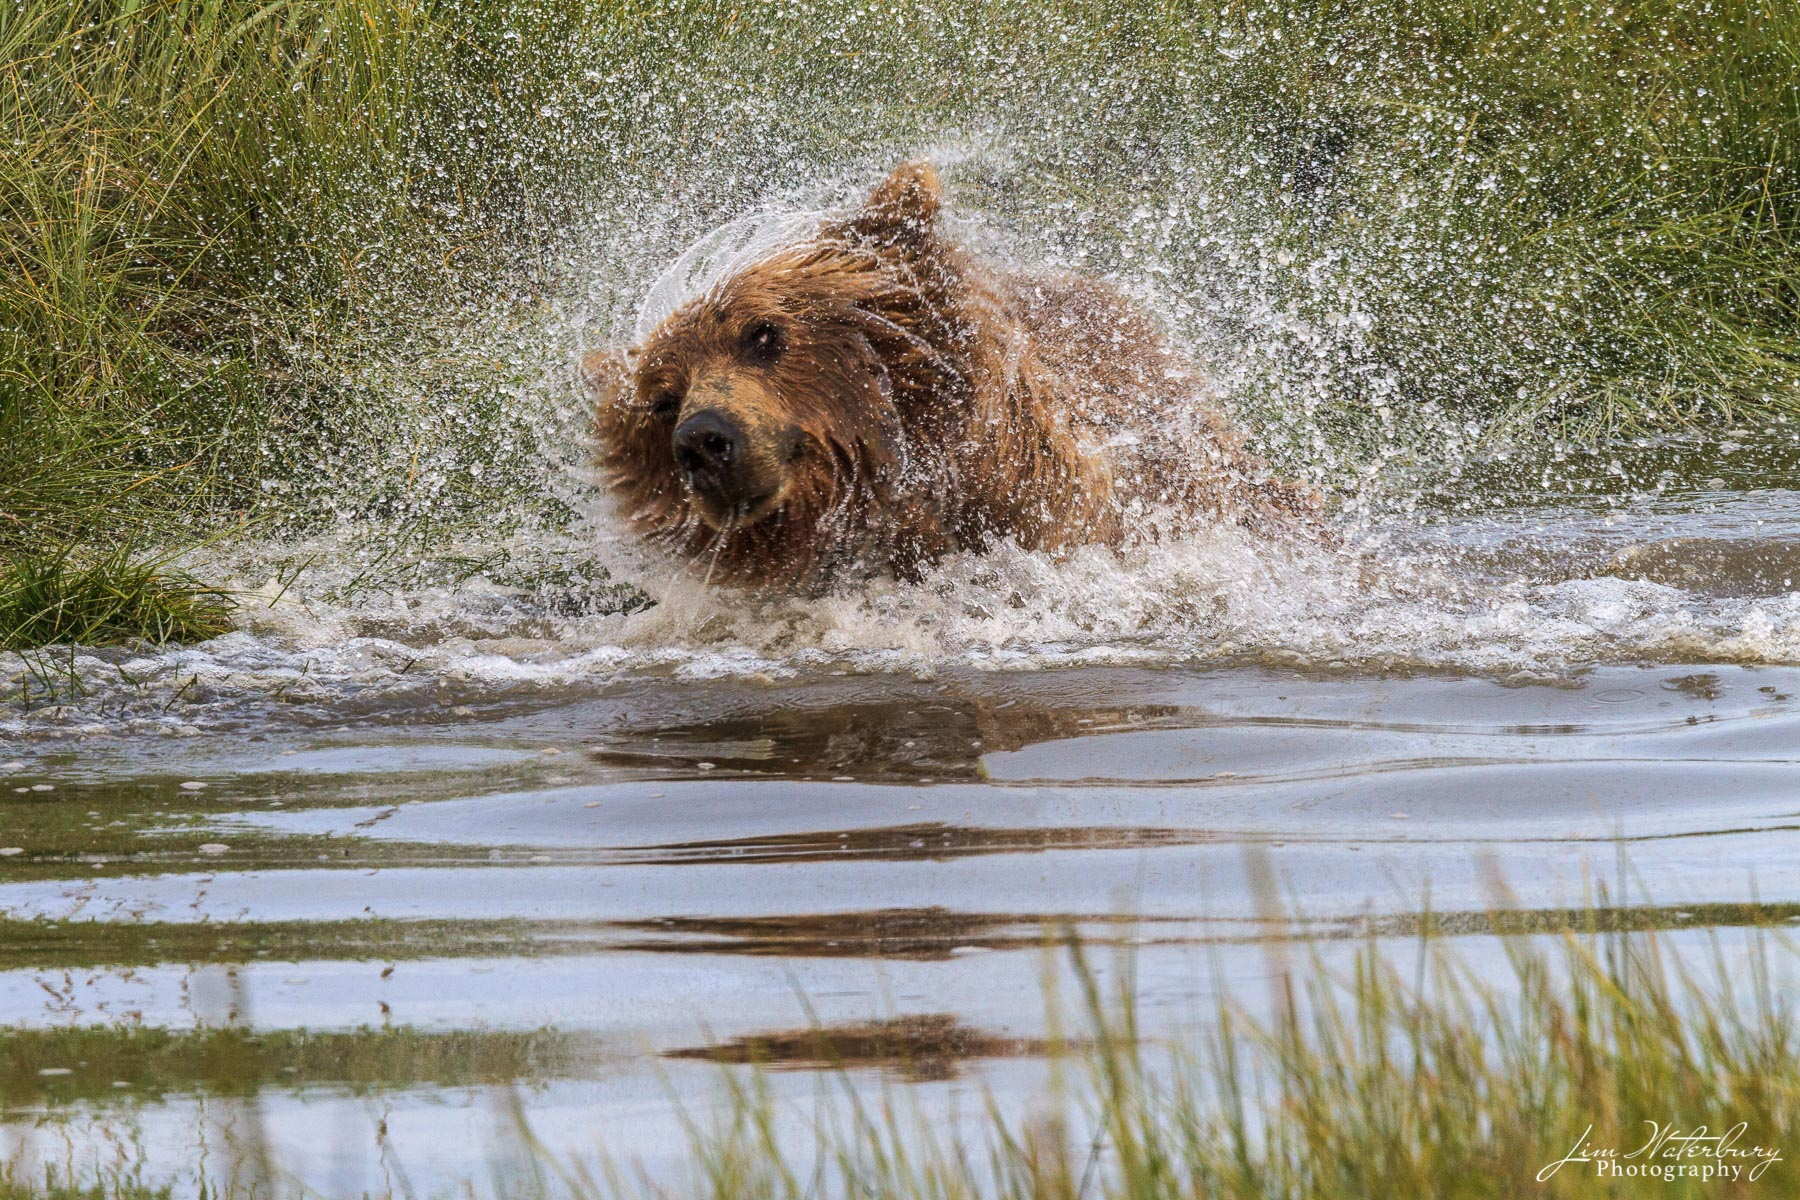 A brown bear shakes off water after crossing the river in Lake Clark National Park.